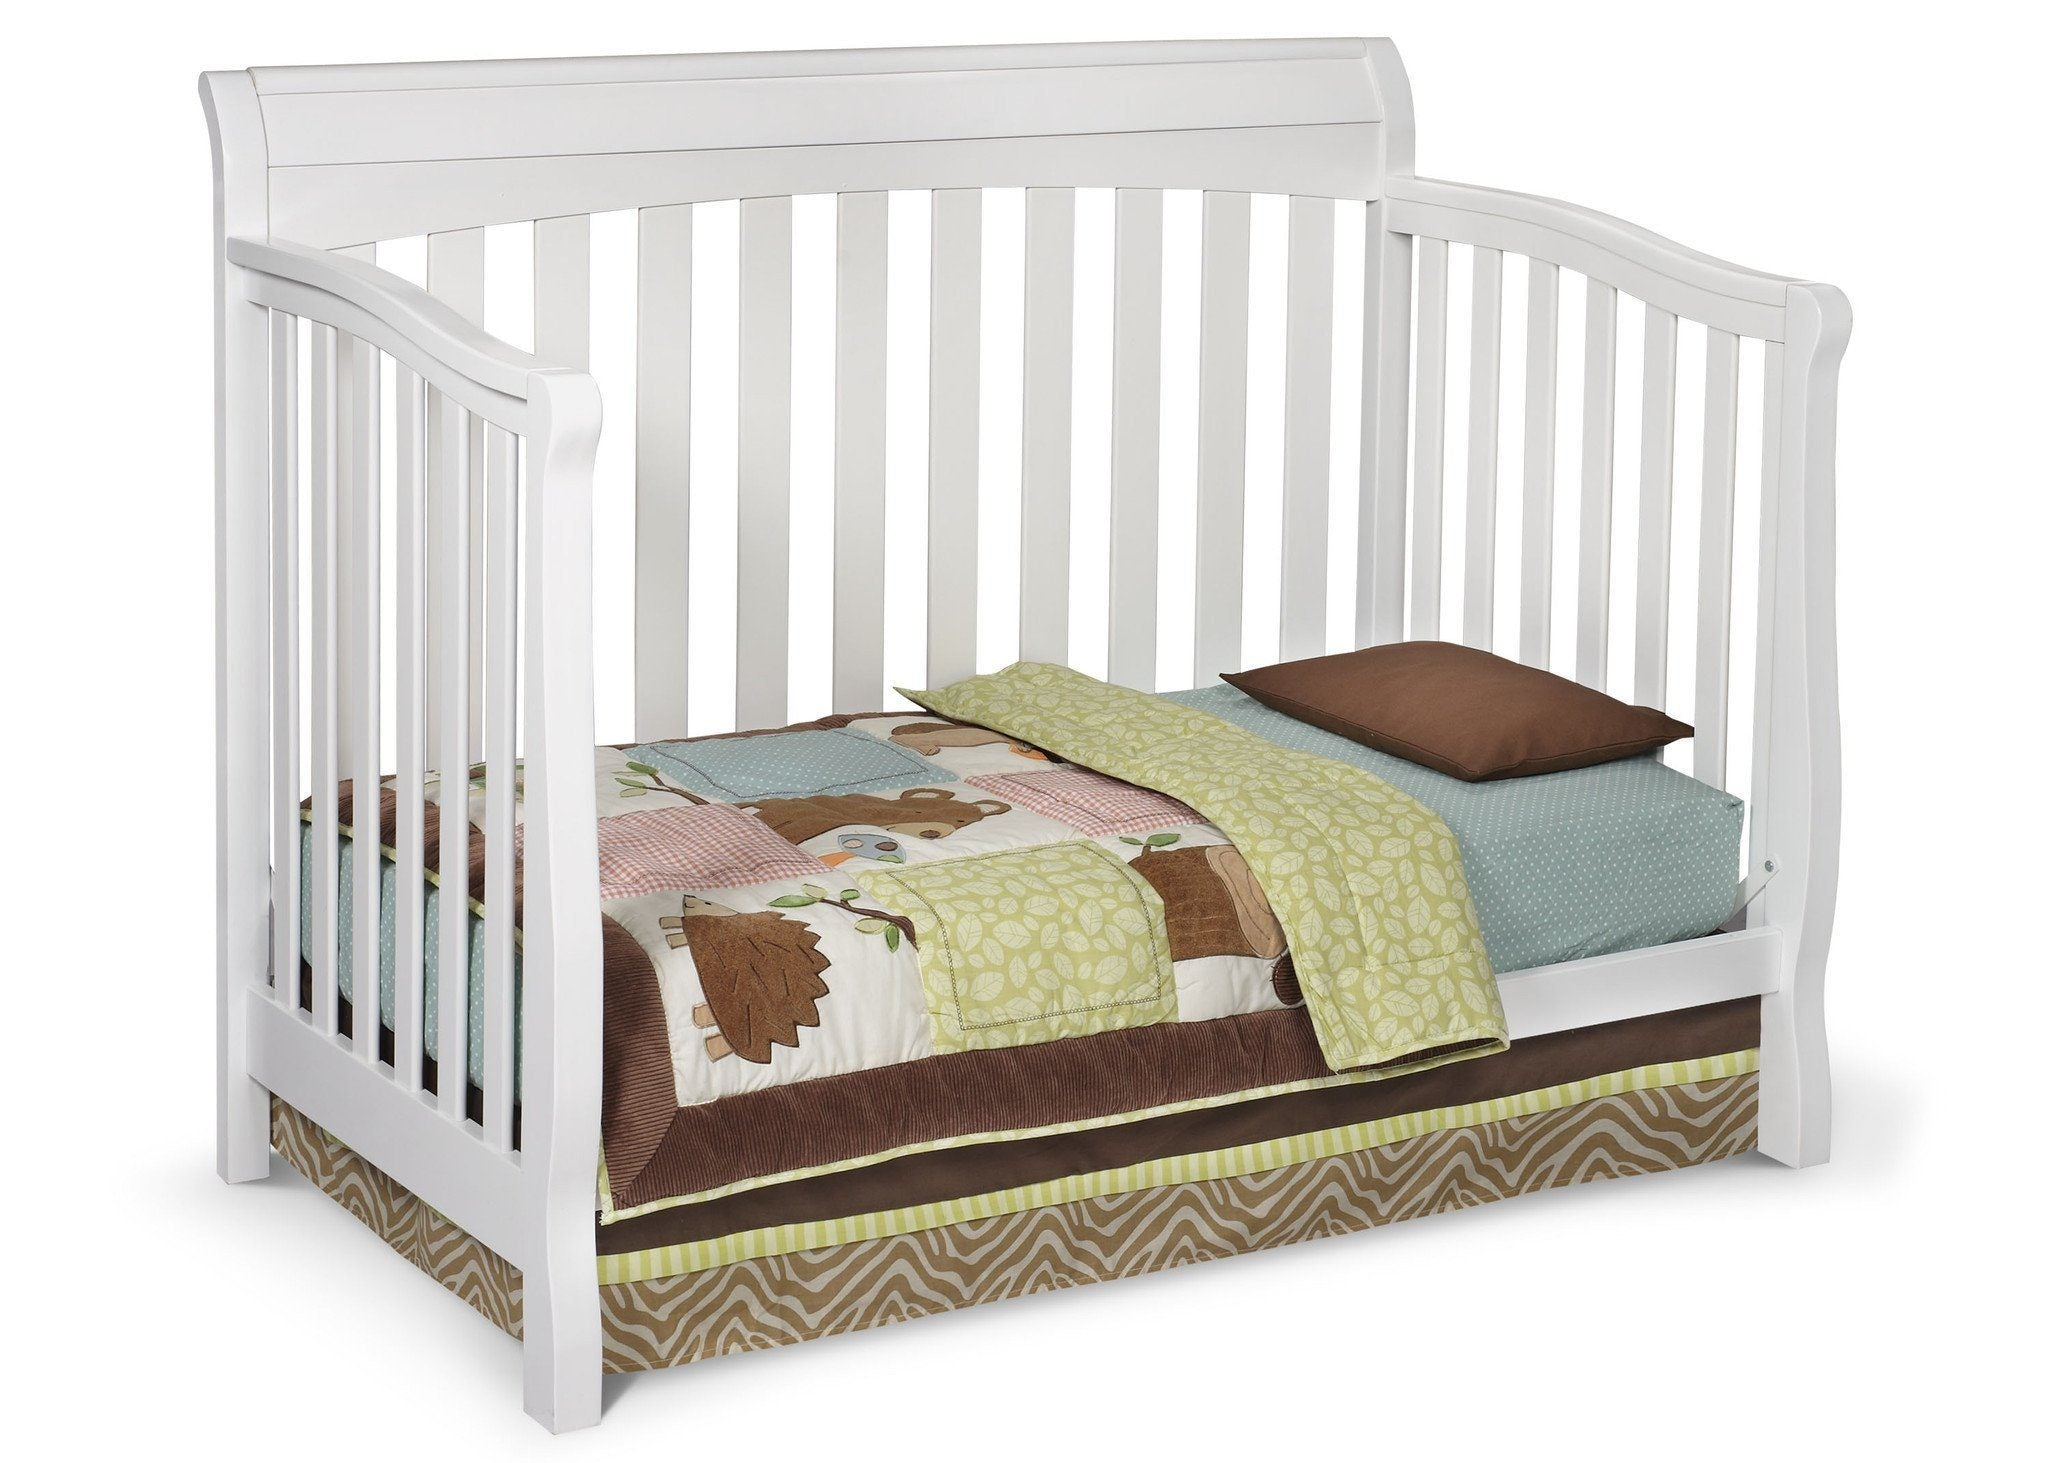 home a custom toddler to turn into bed crib beds image how cribs that of